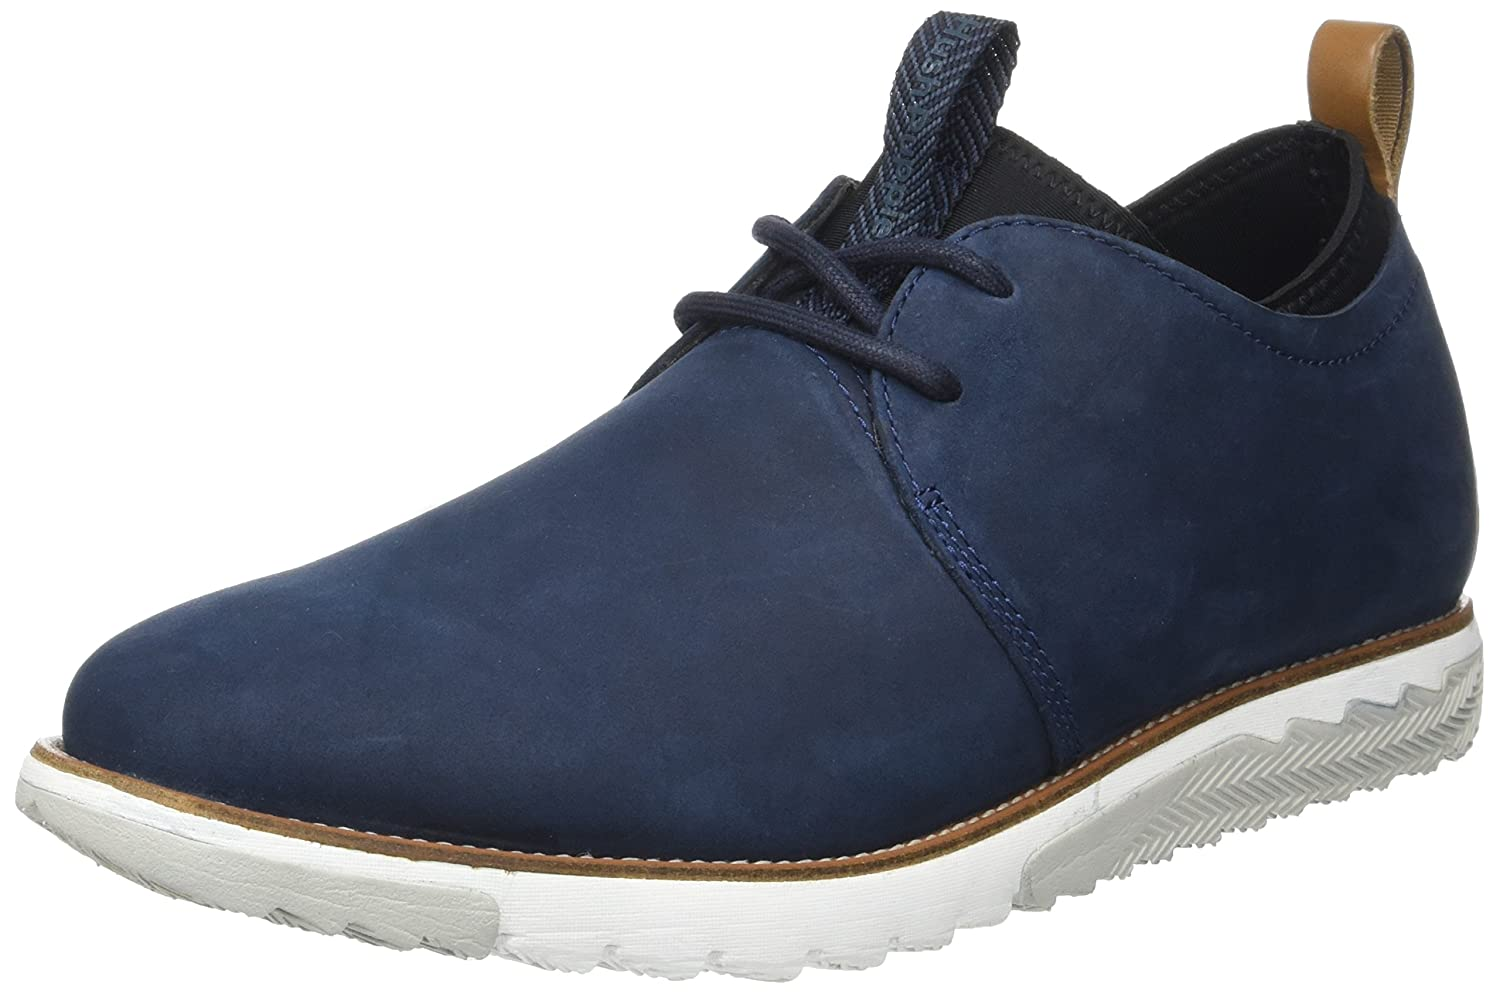 Hush Puppies Performance - Zapatos Derby Hombre